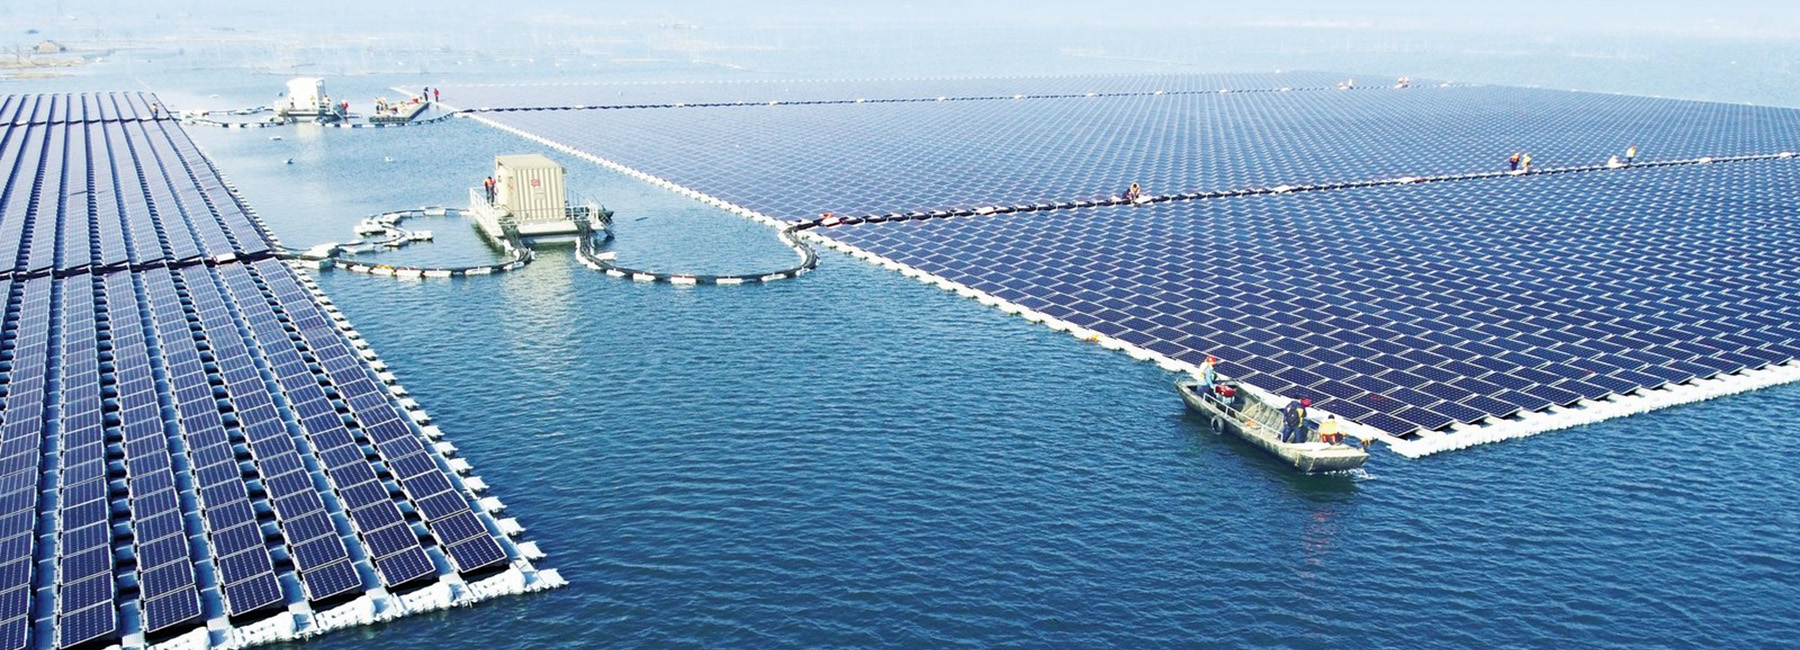 Where in the World is the Biggest Floating Solar Station?